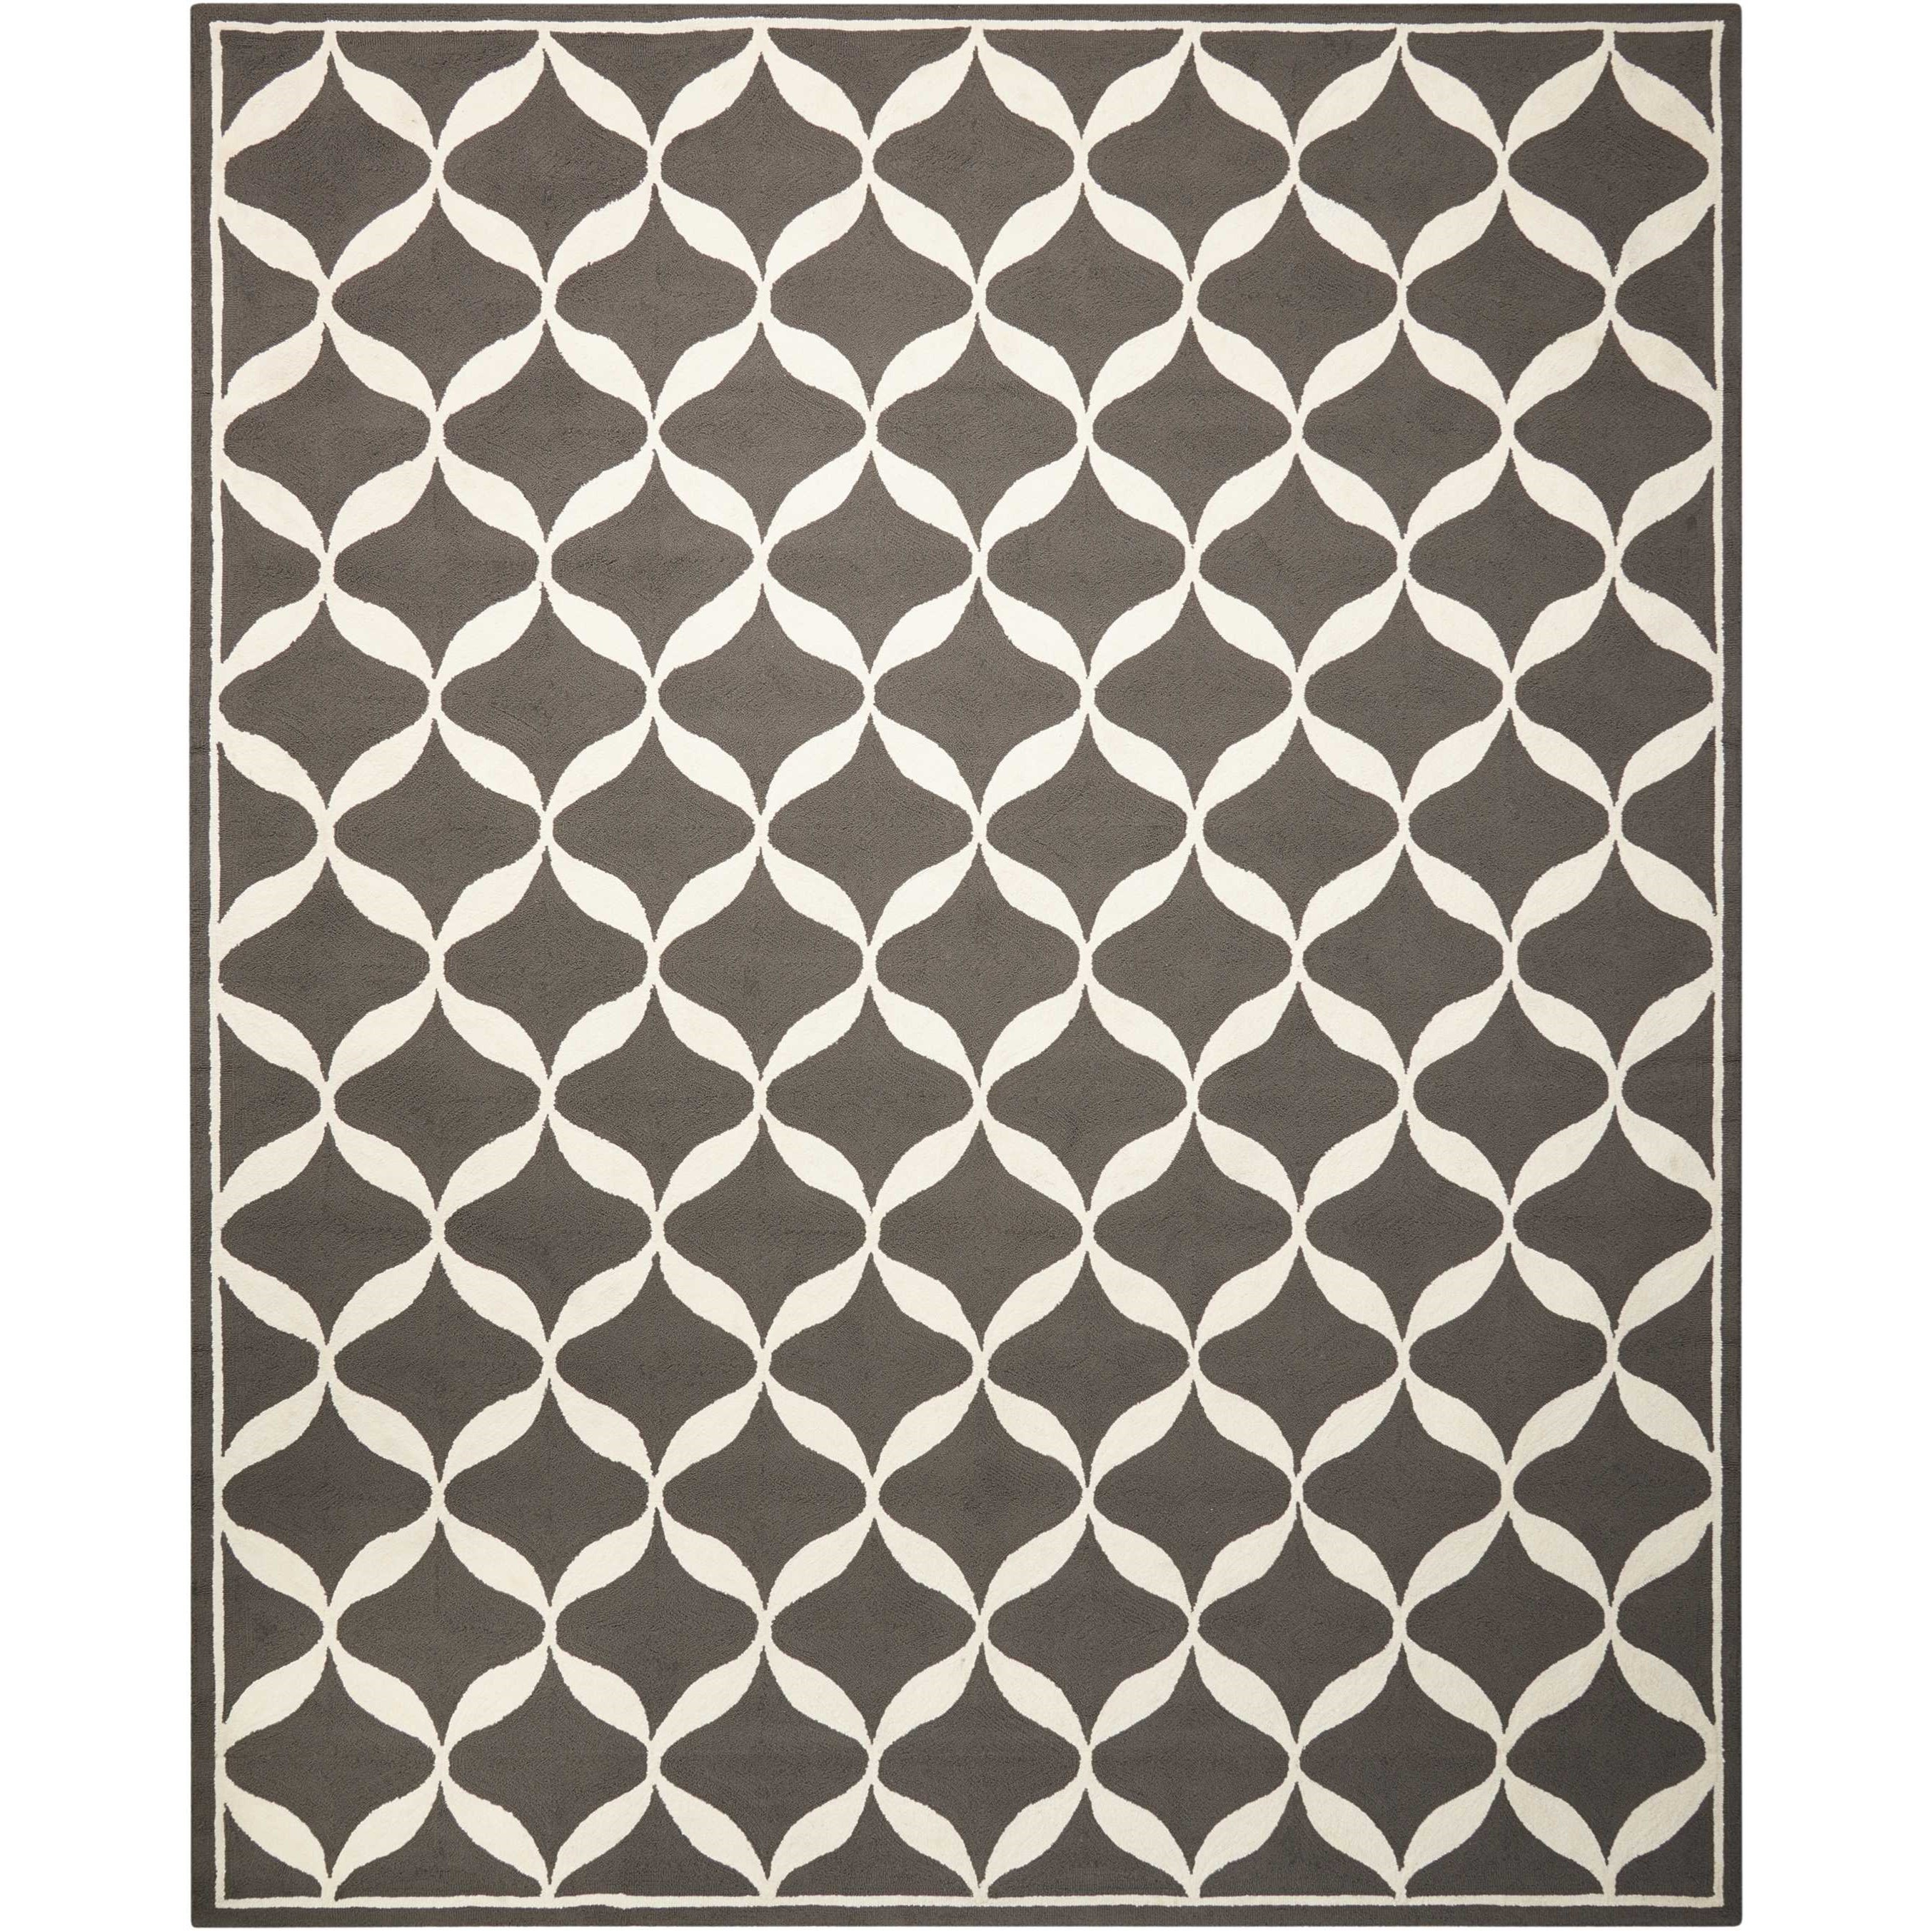 Decor1 8' X 10' Grey/White Rug by Nourison at Adcock Furniture